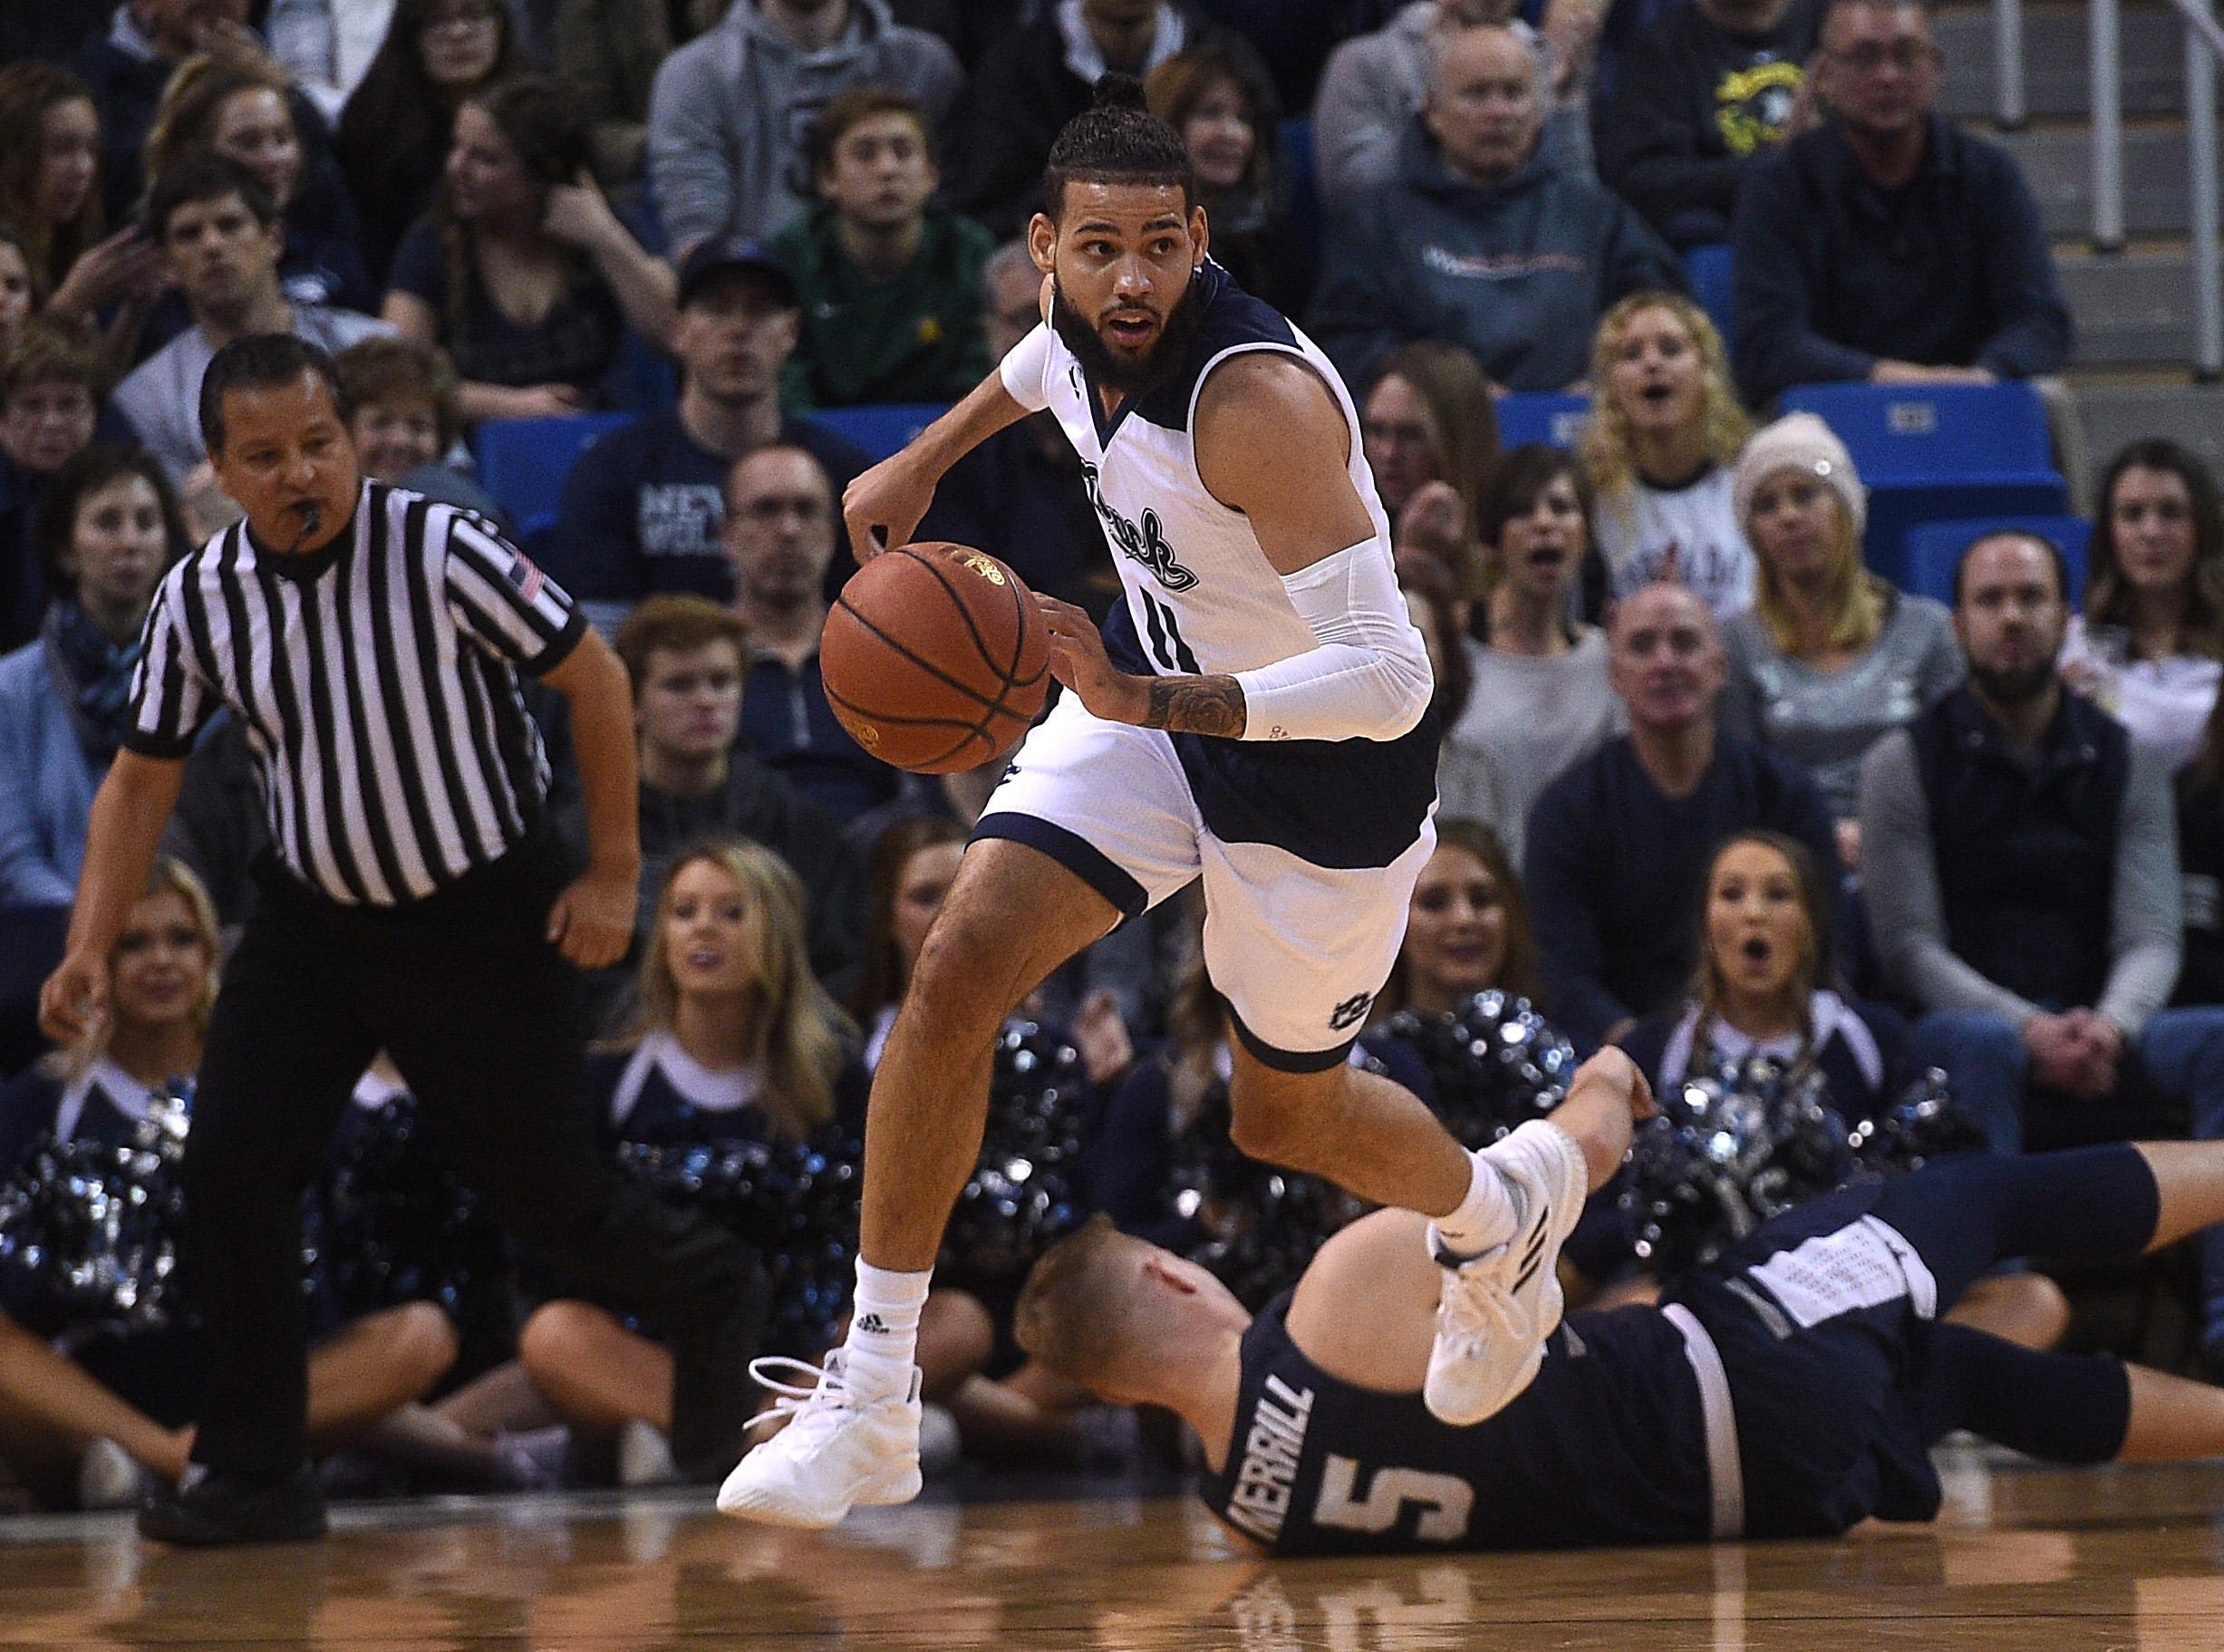 Nevada's Cody Martin (11) heads up court while taking on Utah St. during their basketball game at Lawlor Events Center in Reno on Jan. 2, 2019.